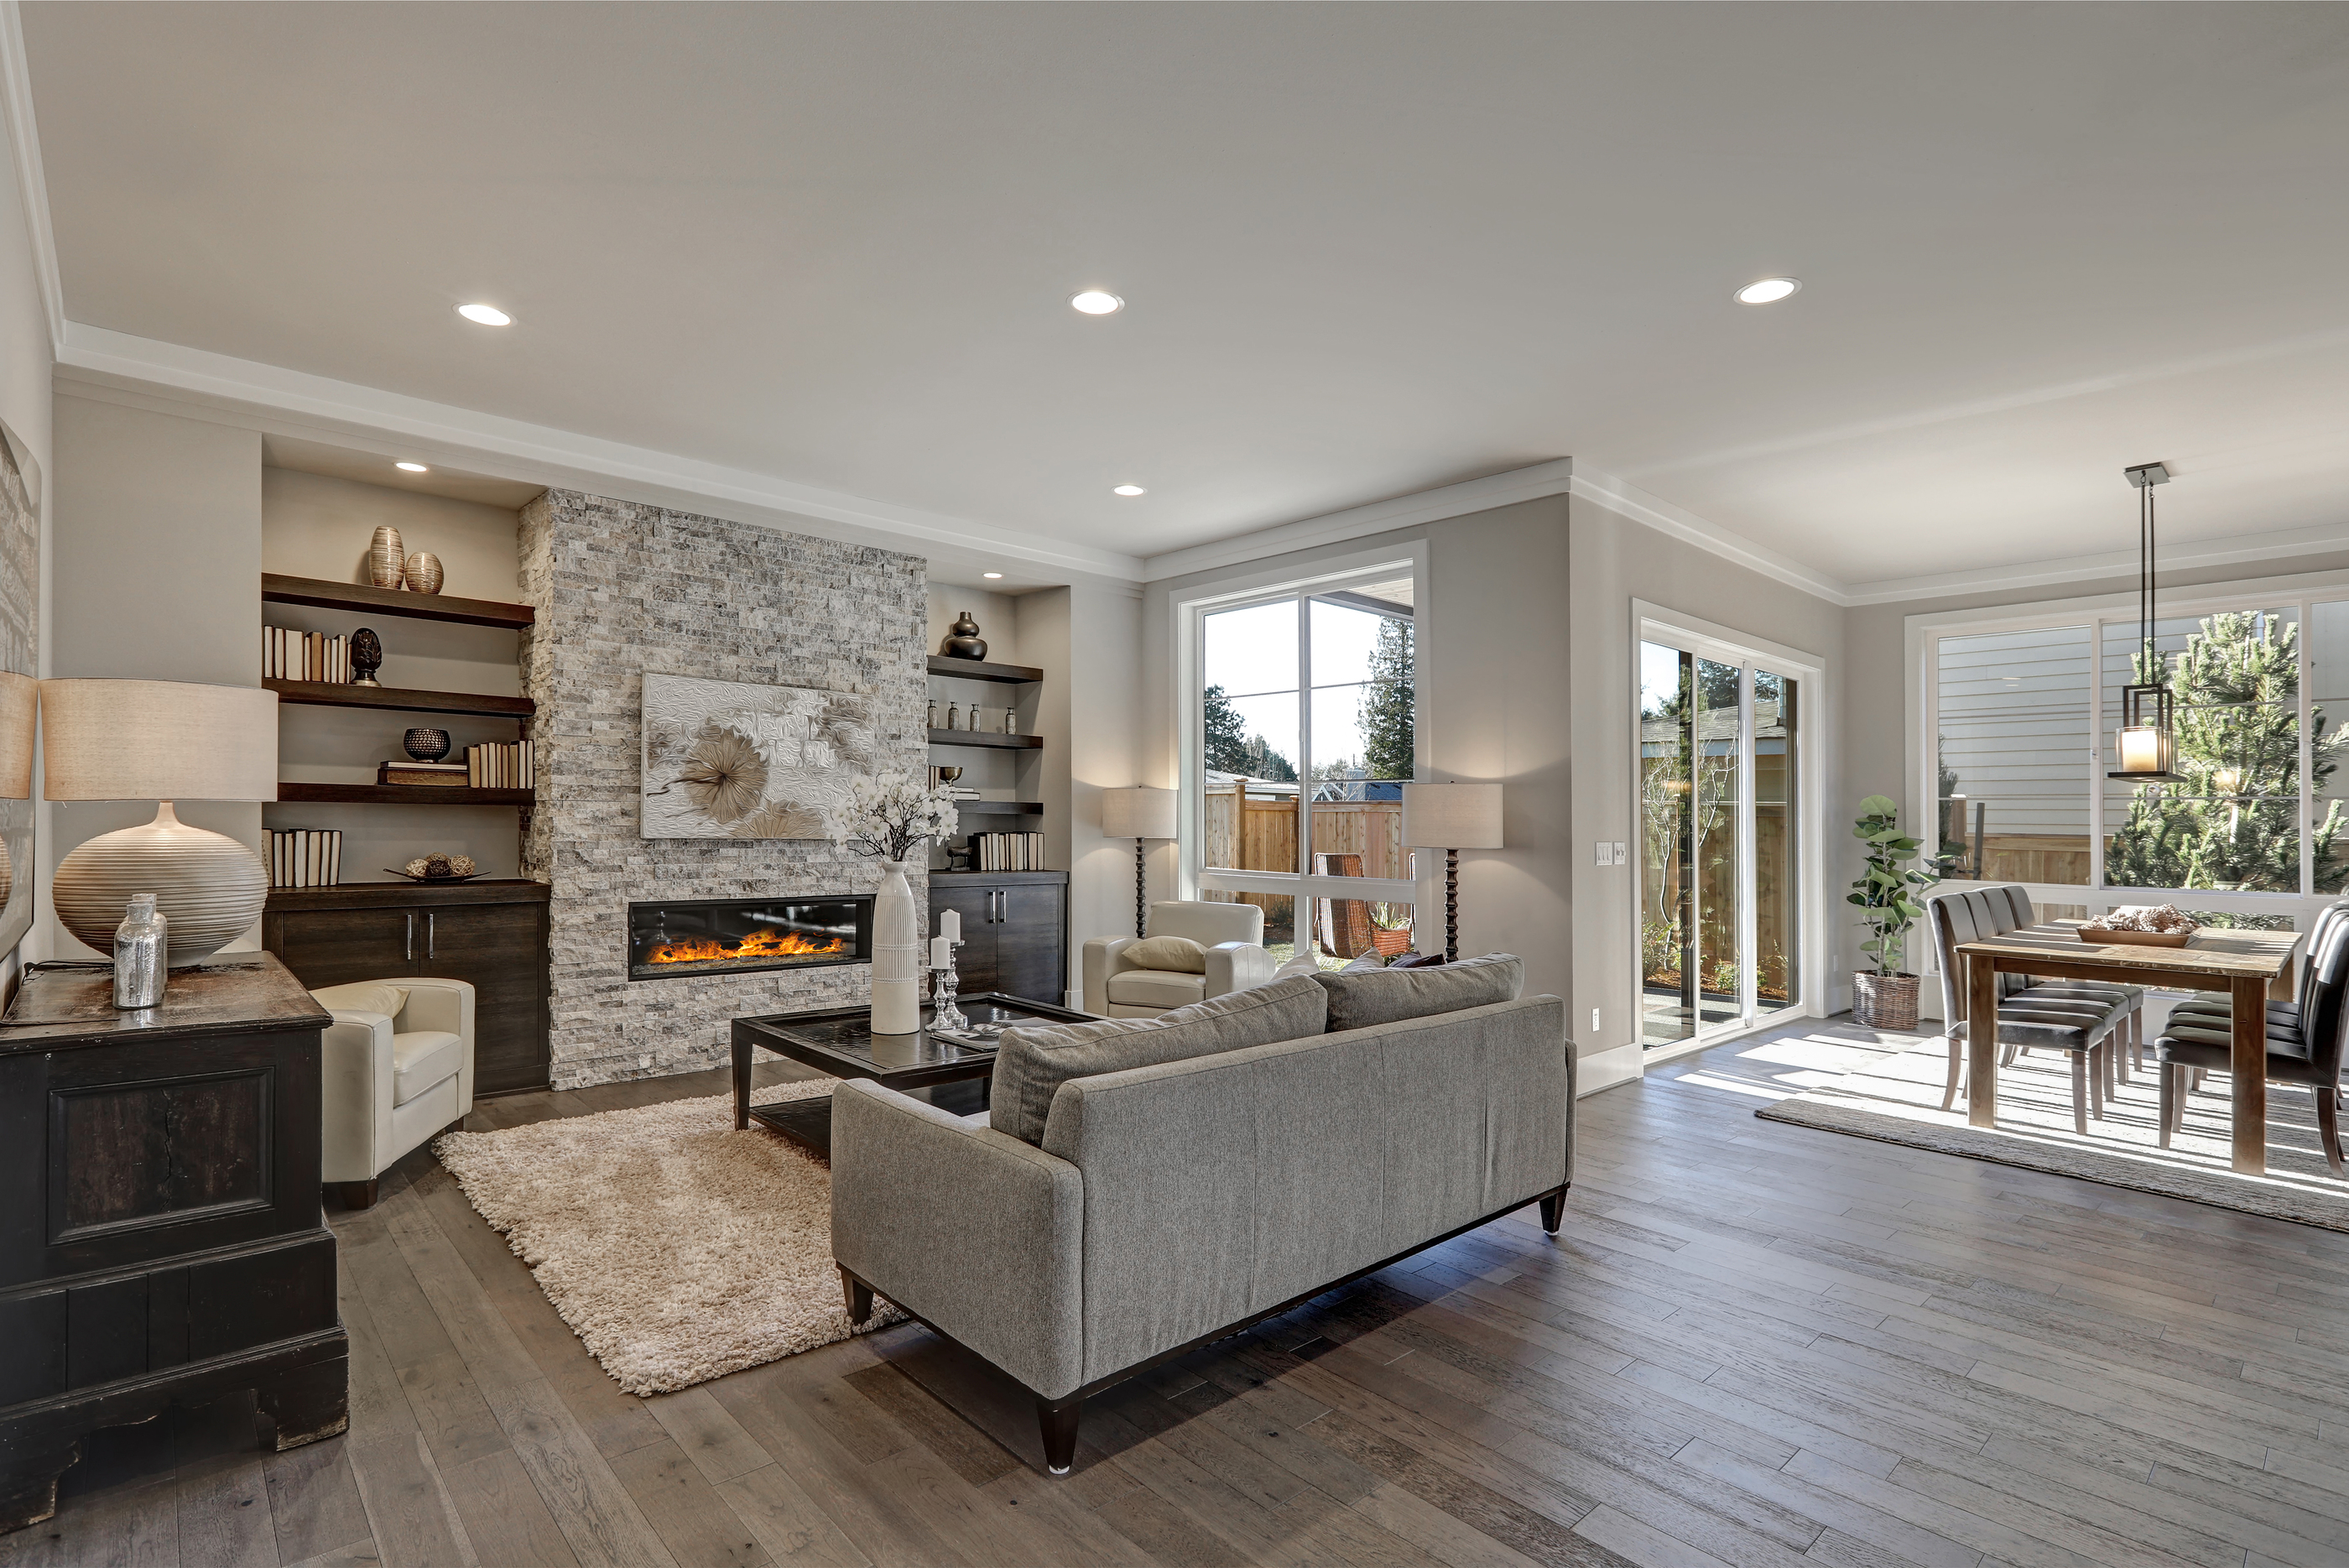 Chic Living Room Interior In Gray Colors